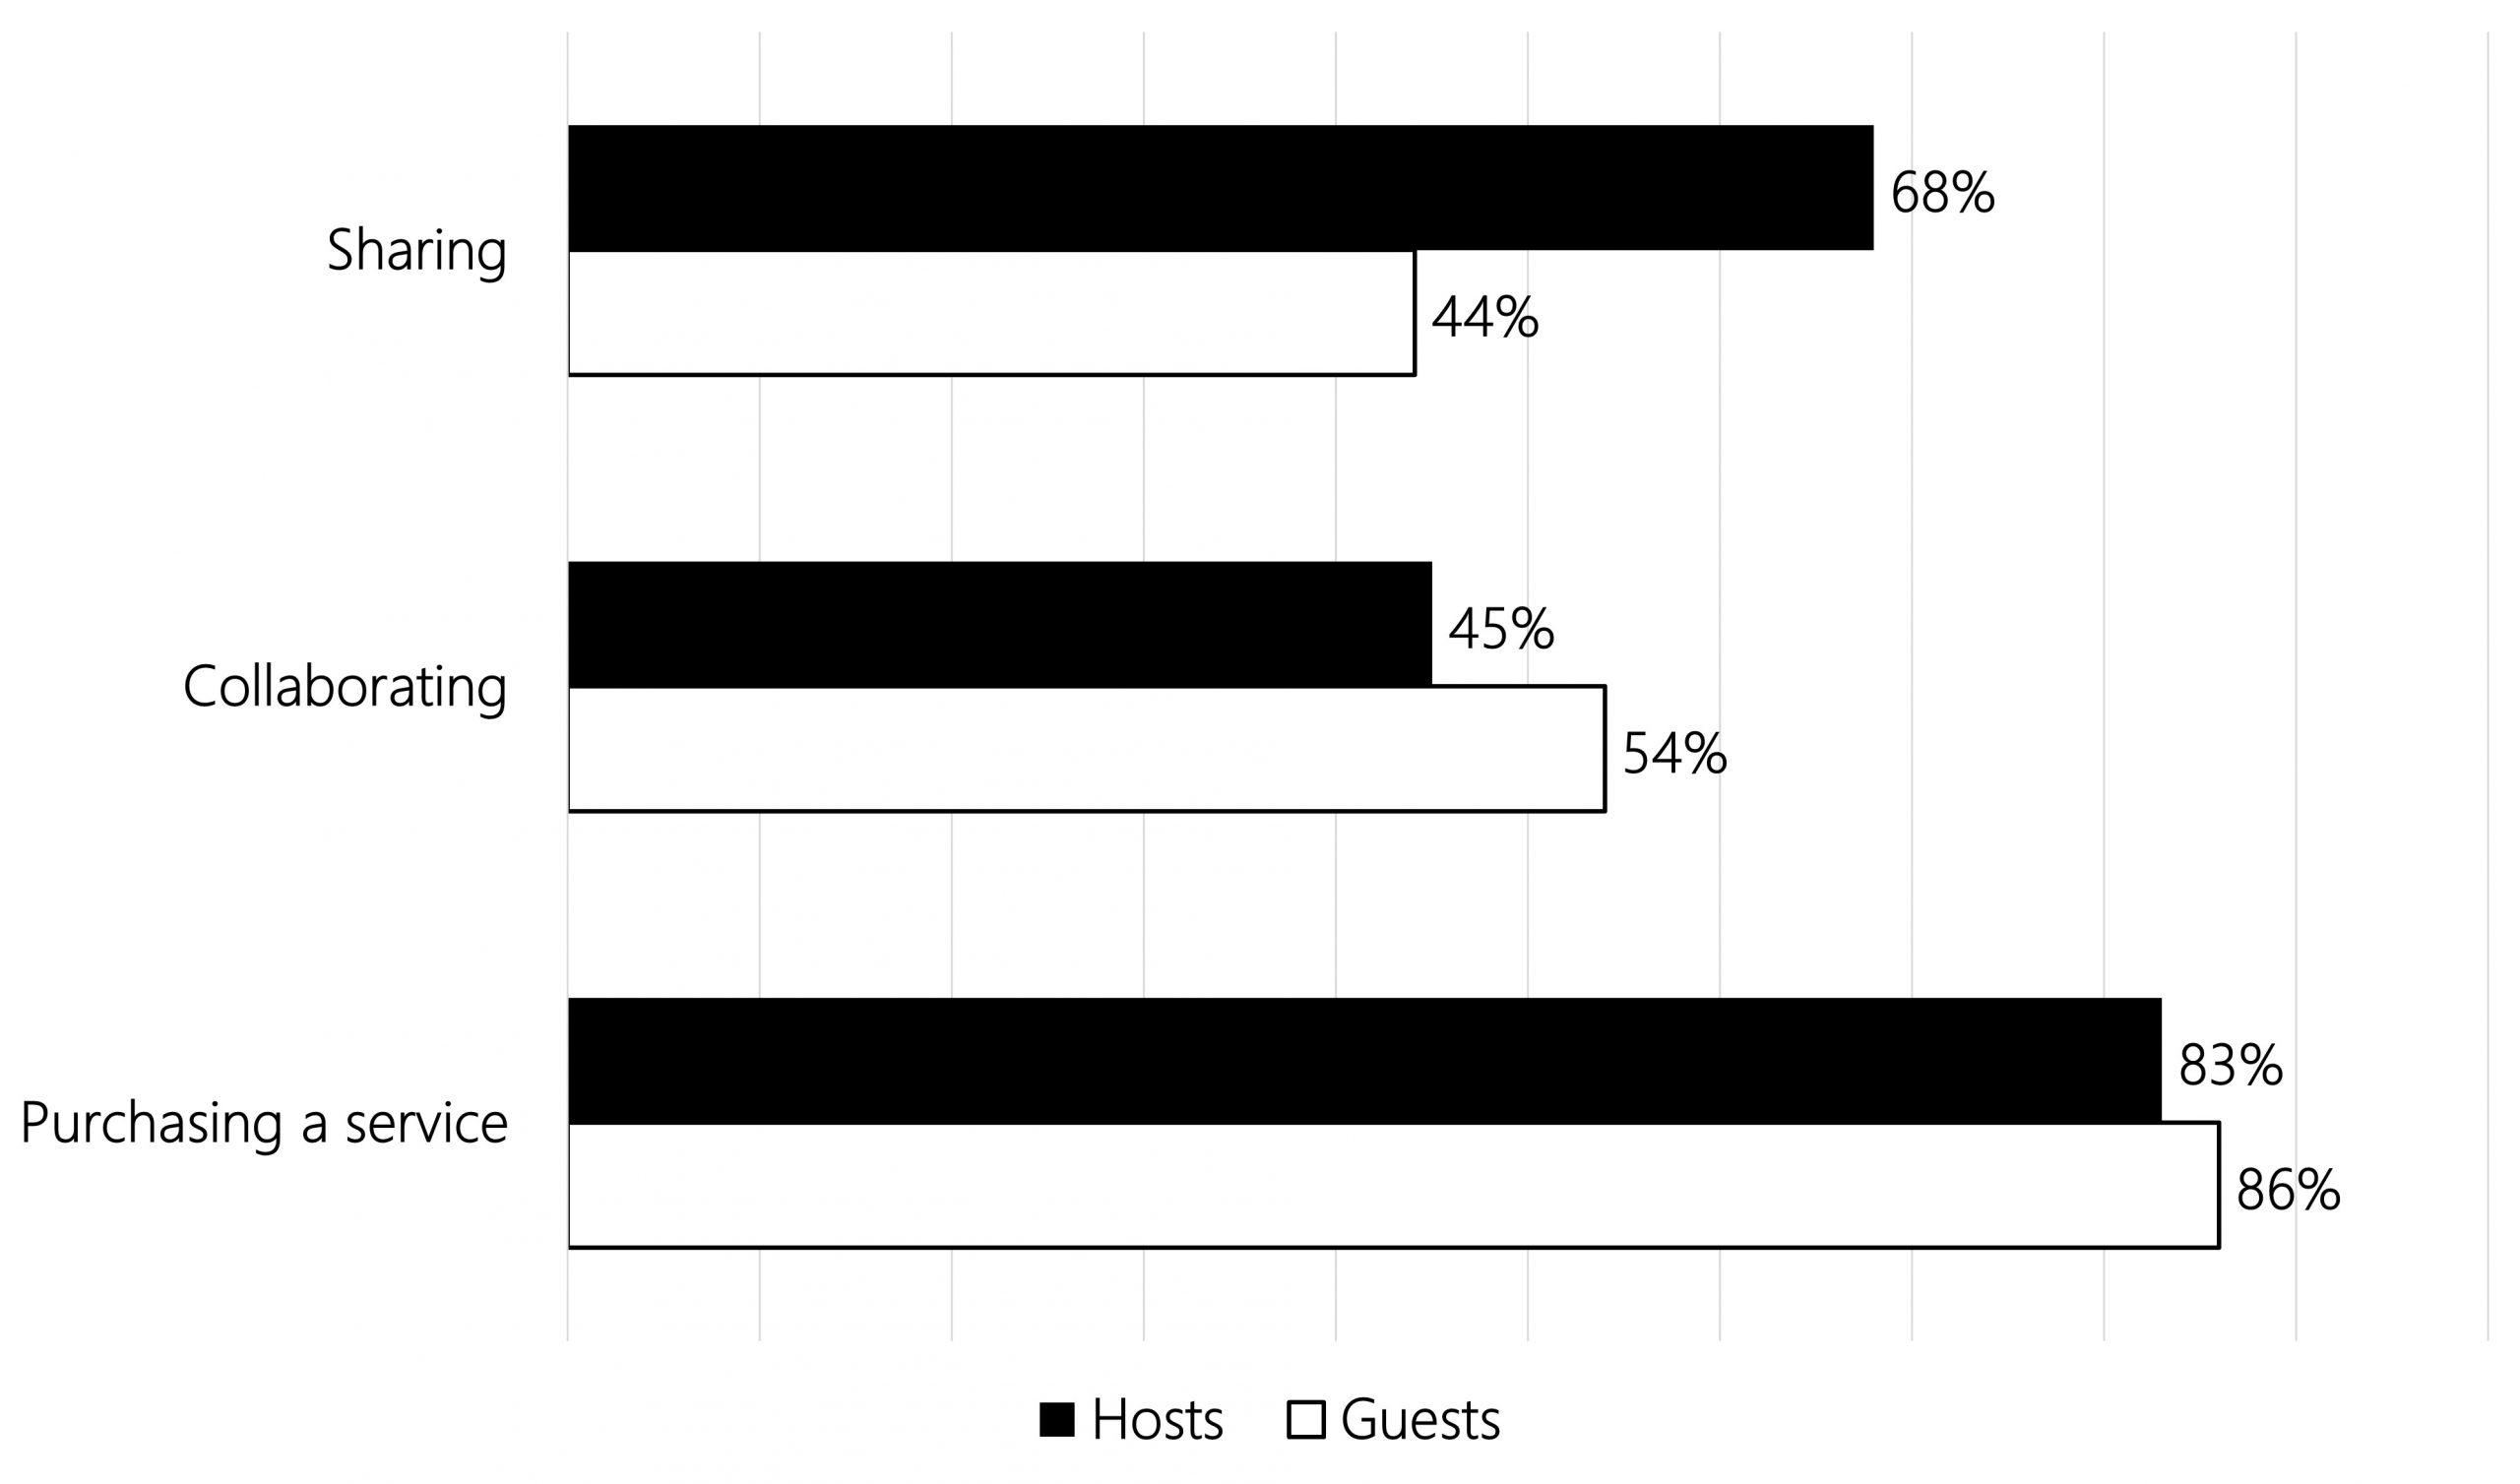 Bar chart showing that the majority of hosts (83%) and guests (86%) perceive booking on Airbnb as 'purchasing a service', compared to 'sharing' (68% of hosts and 44% of guests) or 'collaborating' (45% of hosts and 54% of guests).